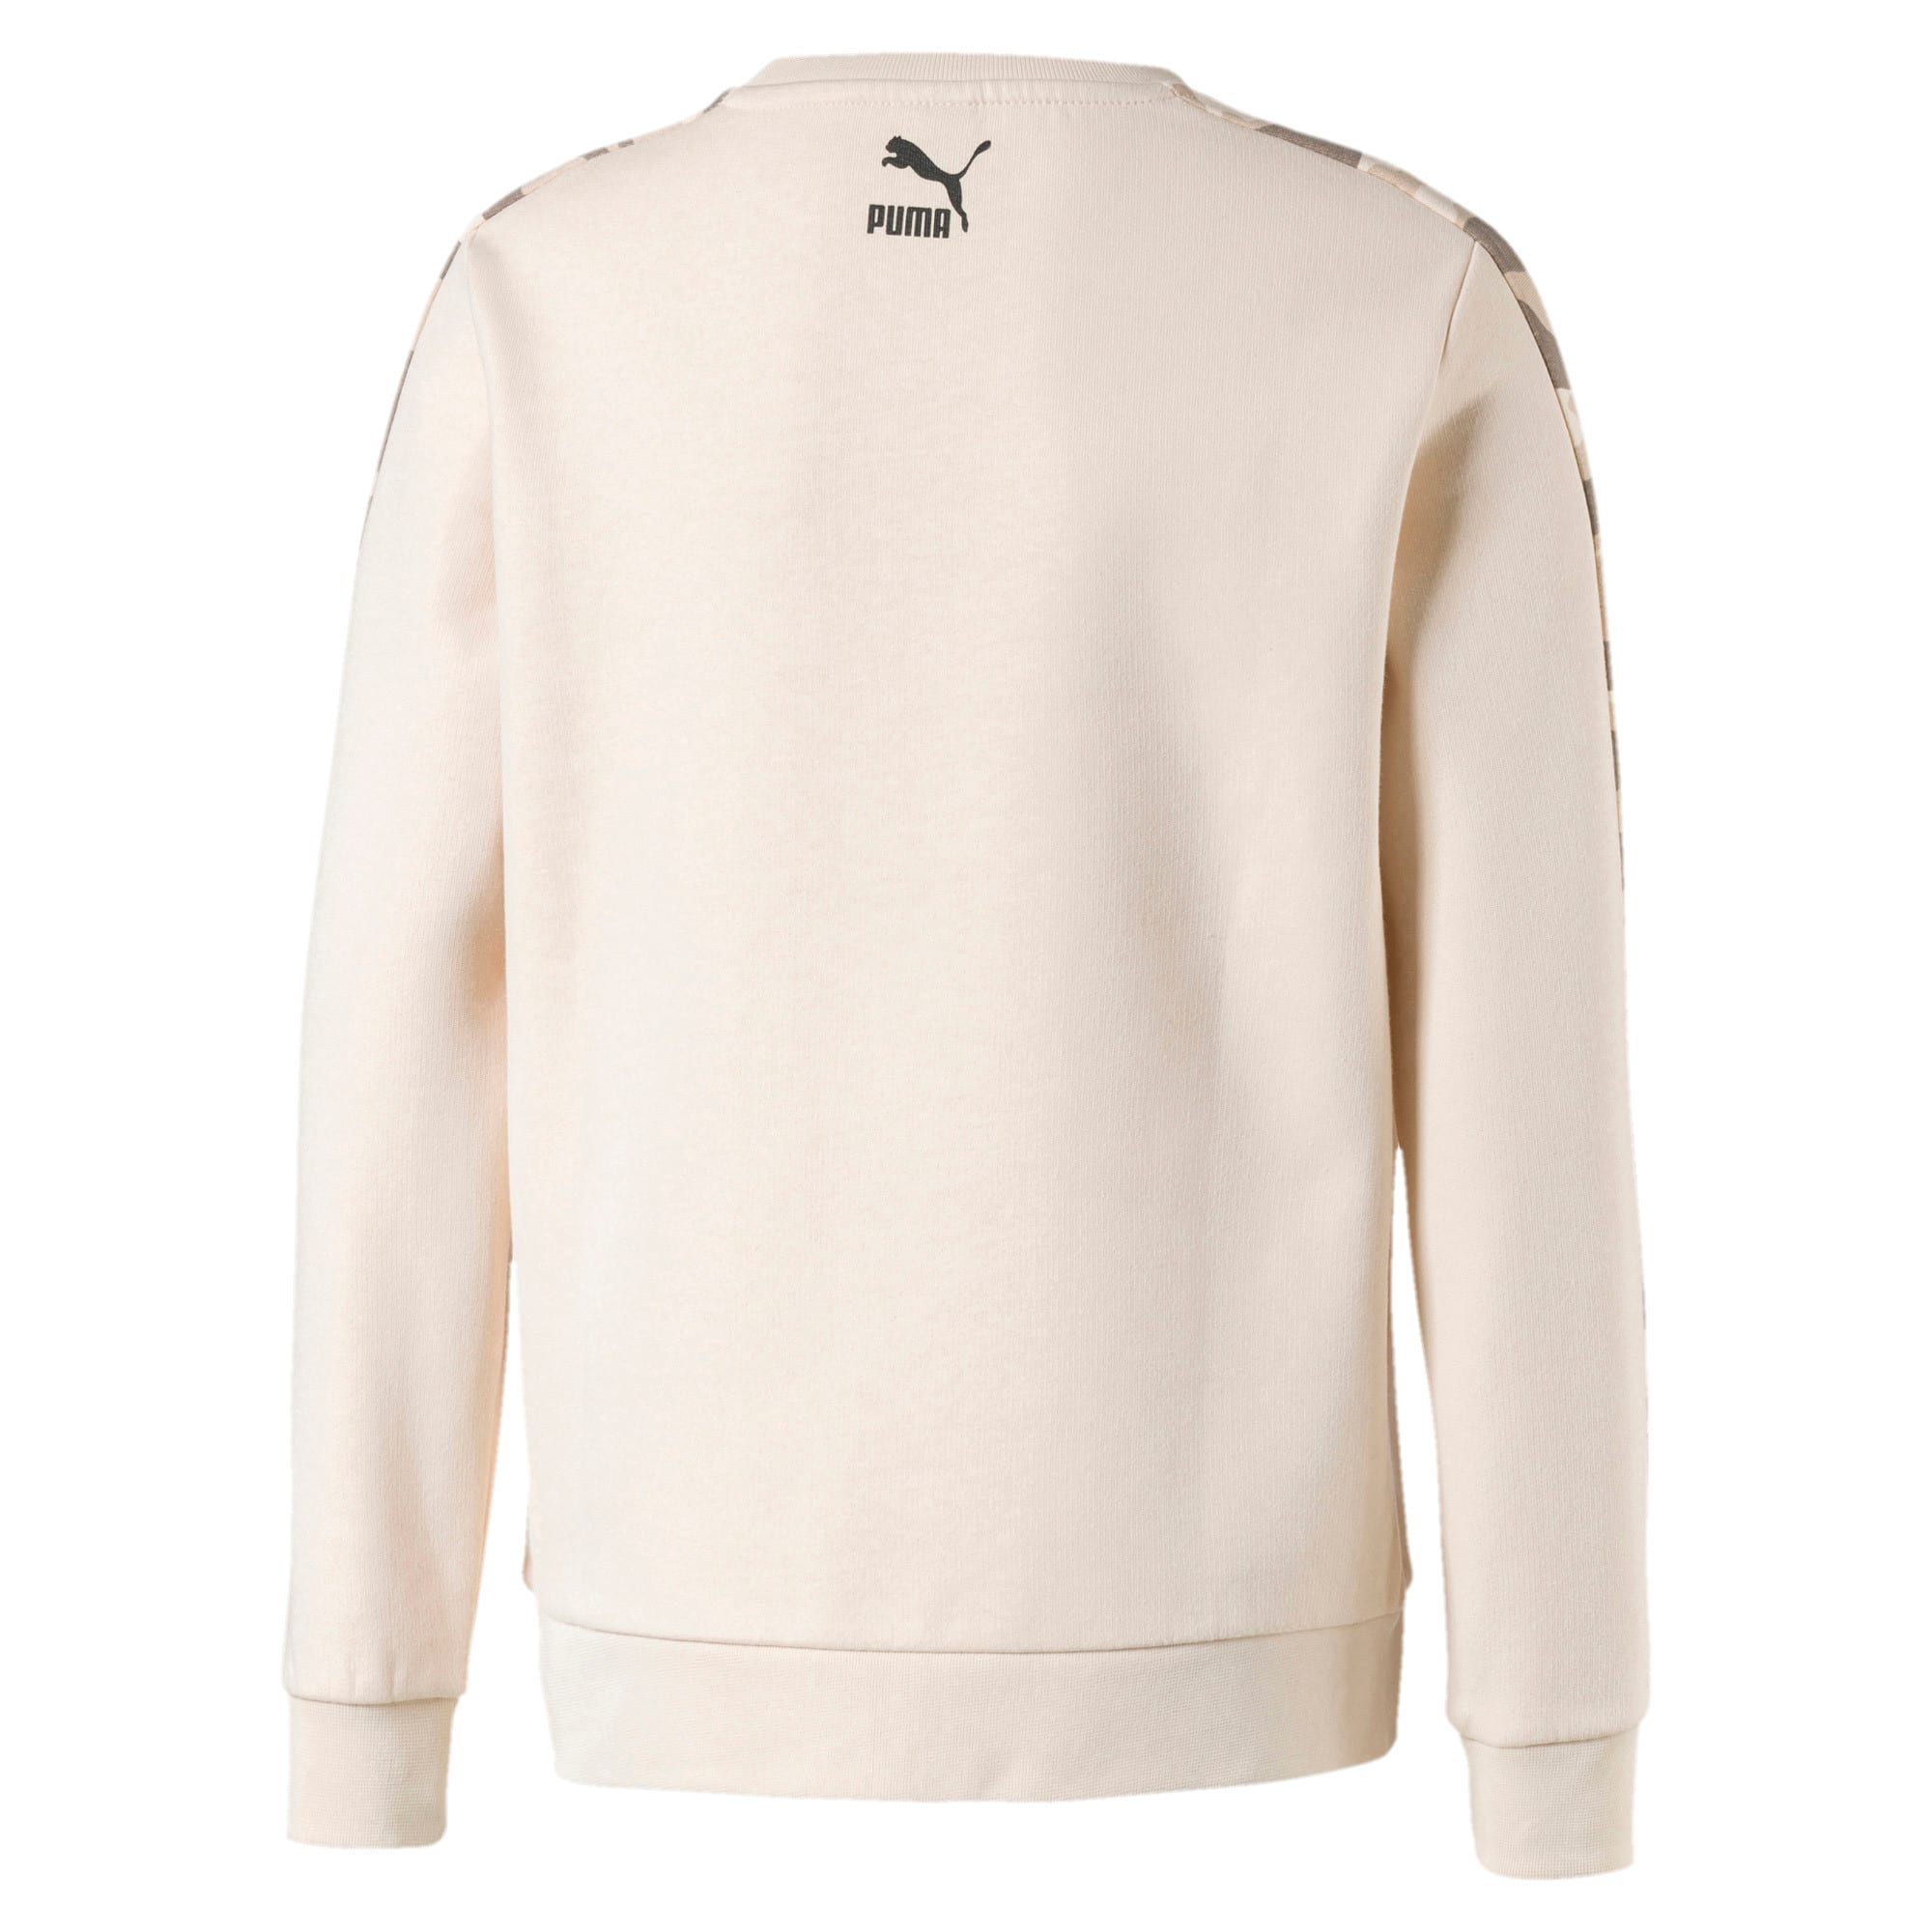 Thumbnail 2 of Street Wear T7 Kinder Sweatshirt, White Swan, medium